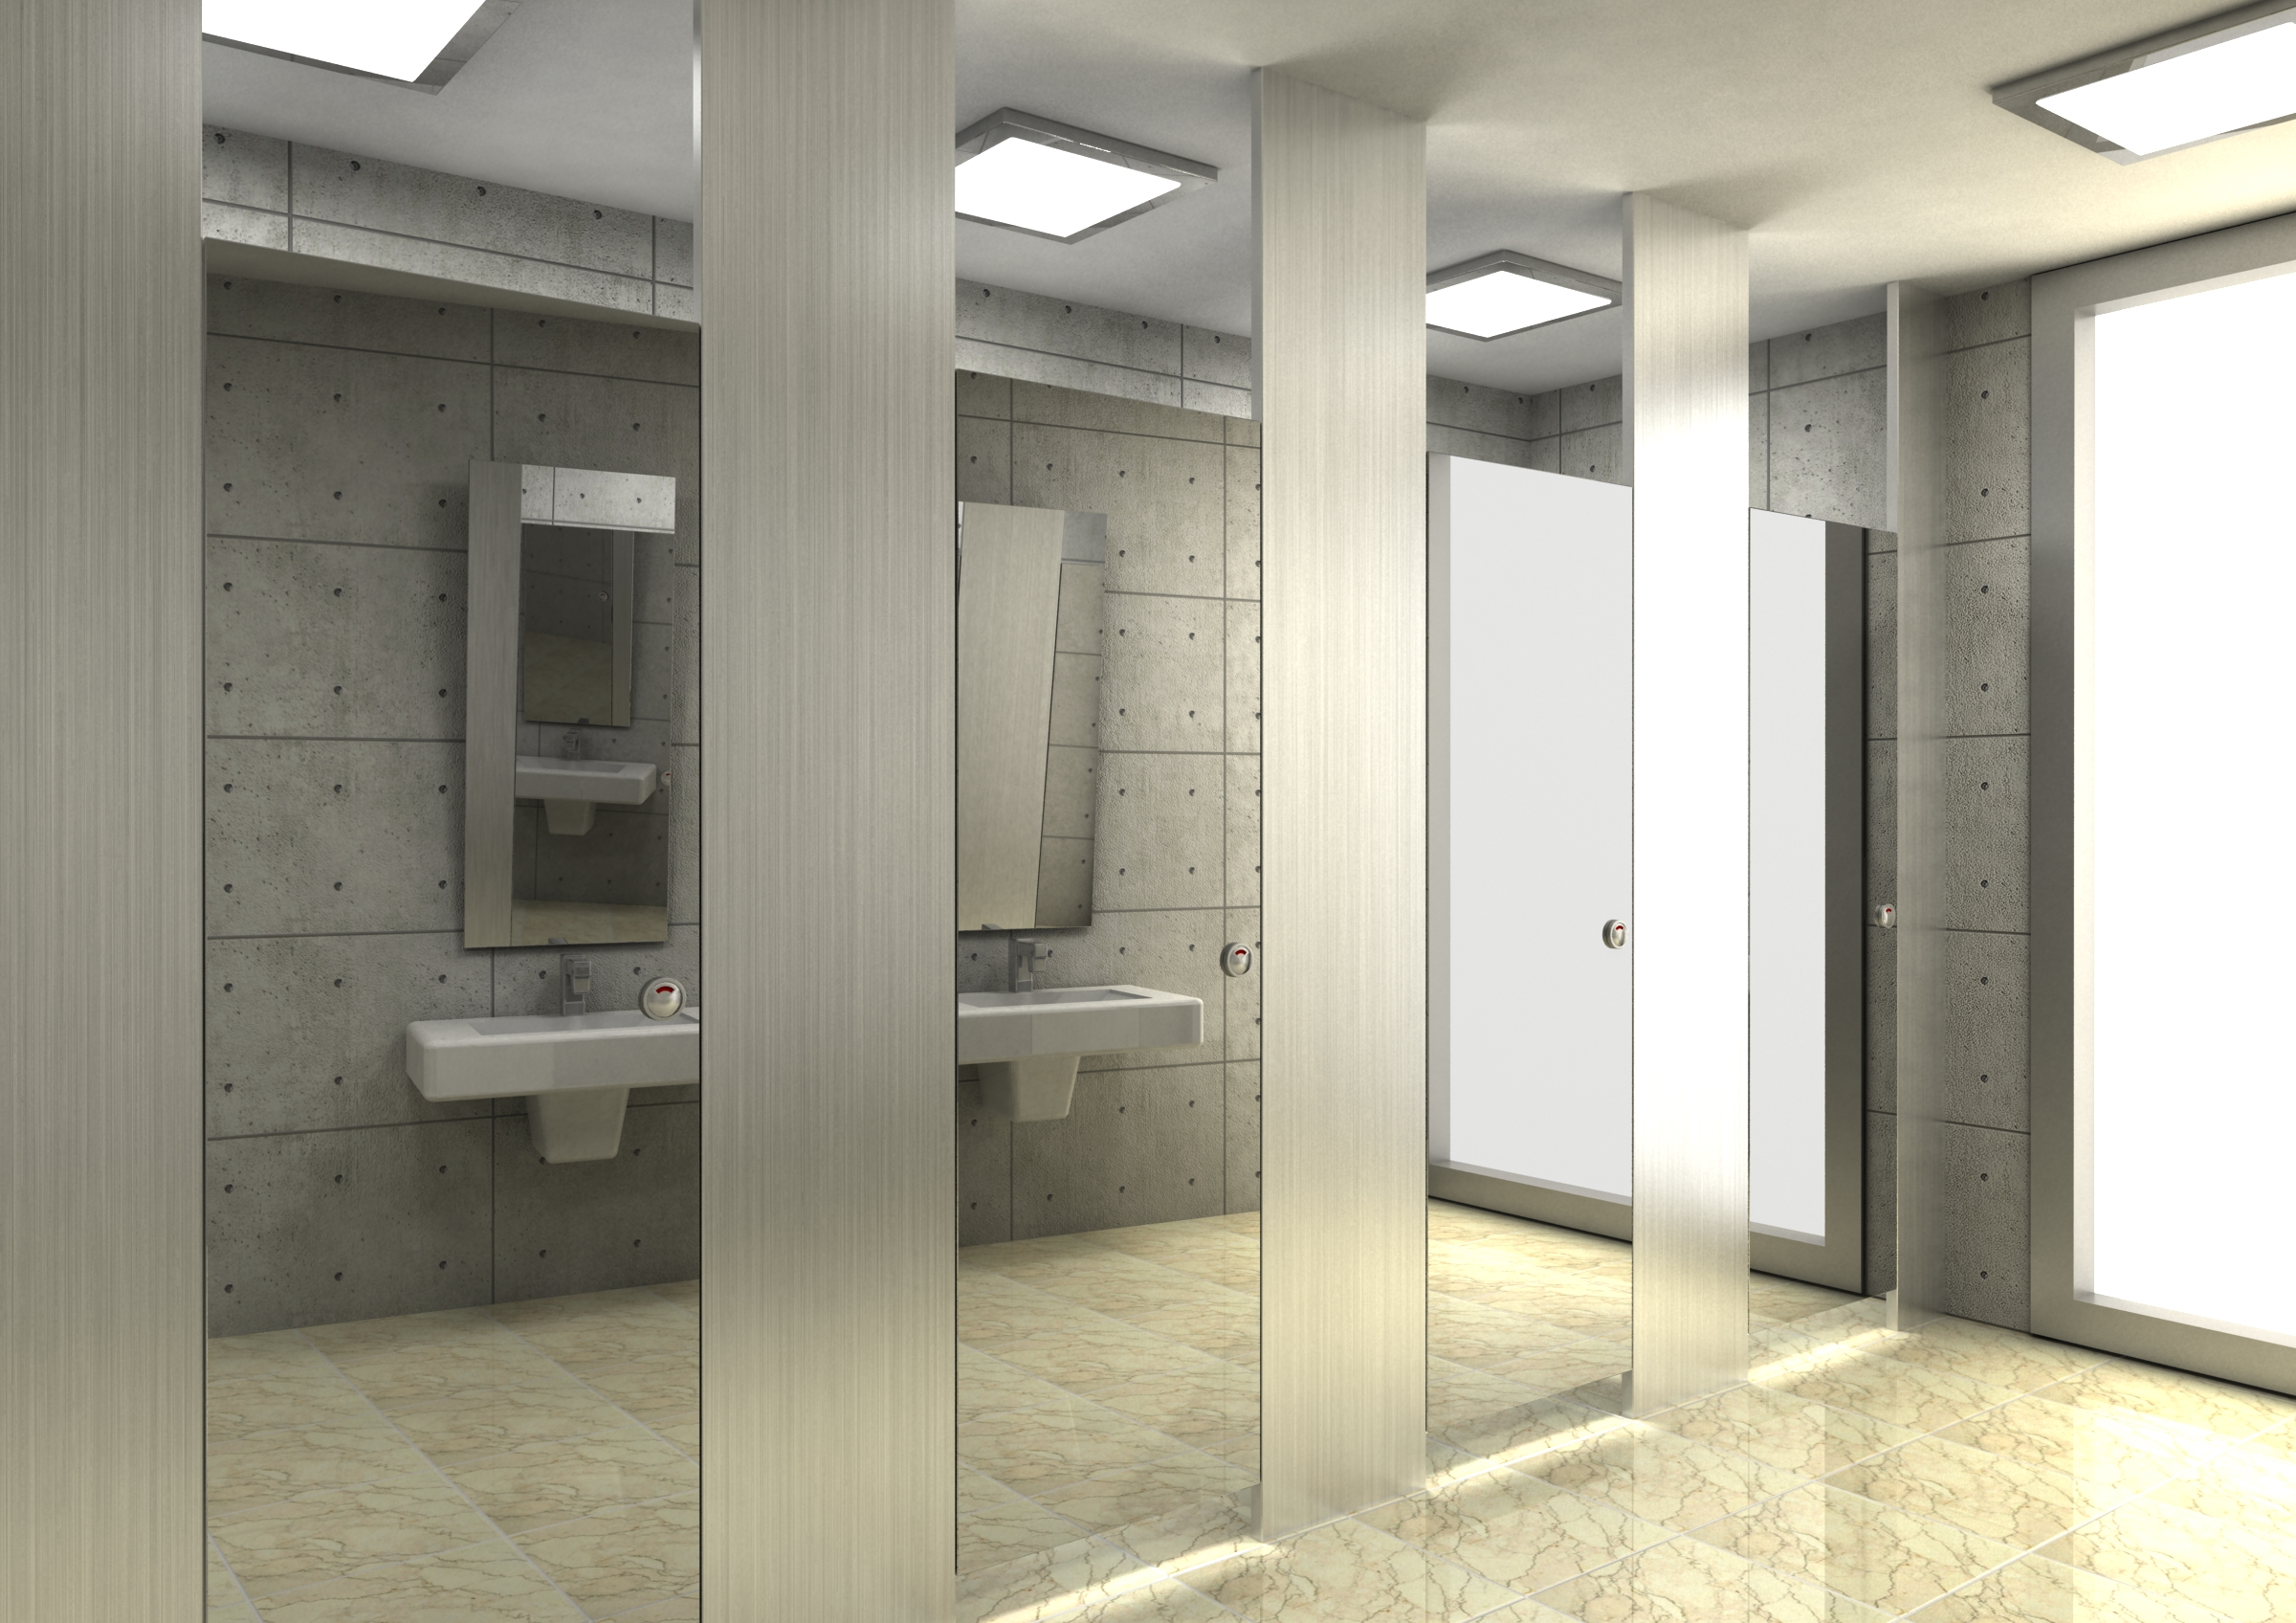 Computer rendering by hyeonil jeong at for New washroom designs